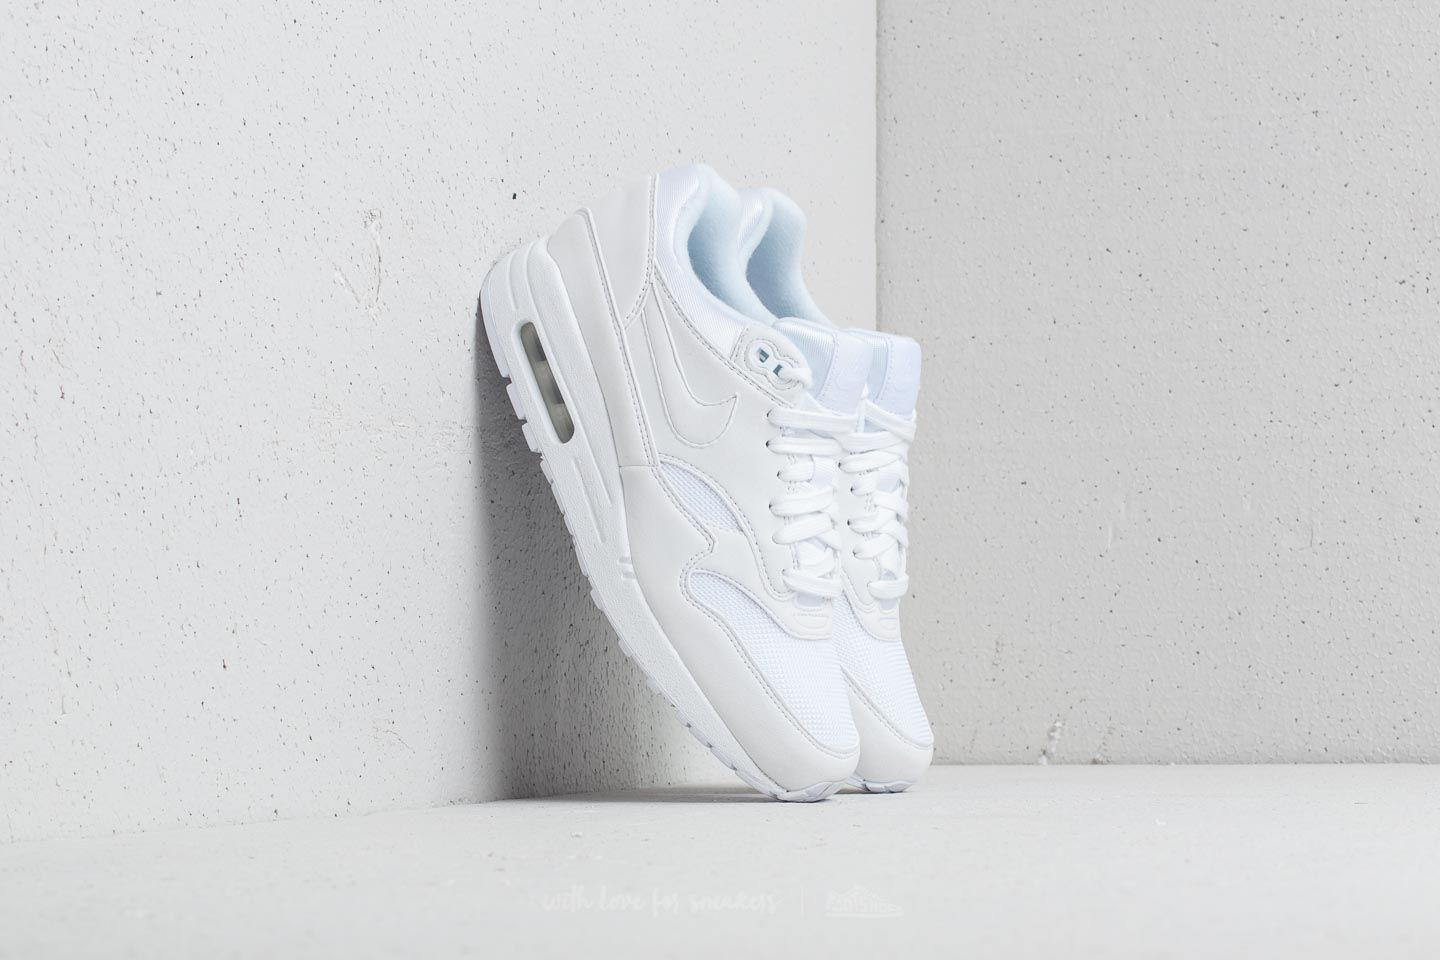 reputable site 34e4c 1c667 Nike Air Max 1 WMNS. White  White-Pure Platinum